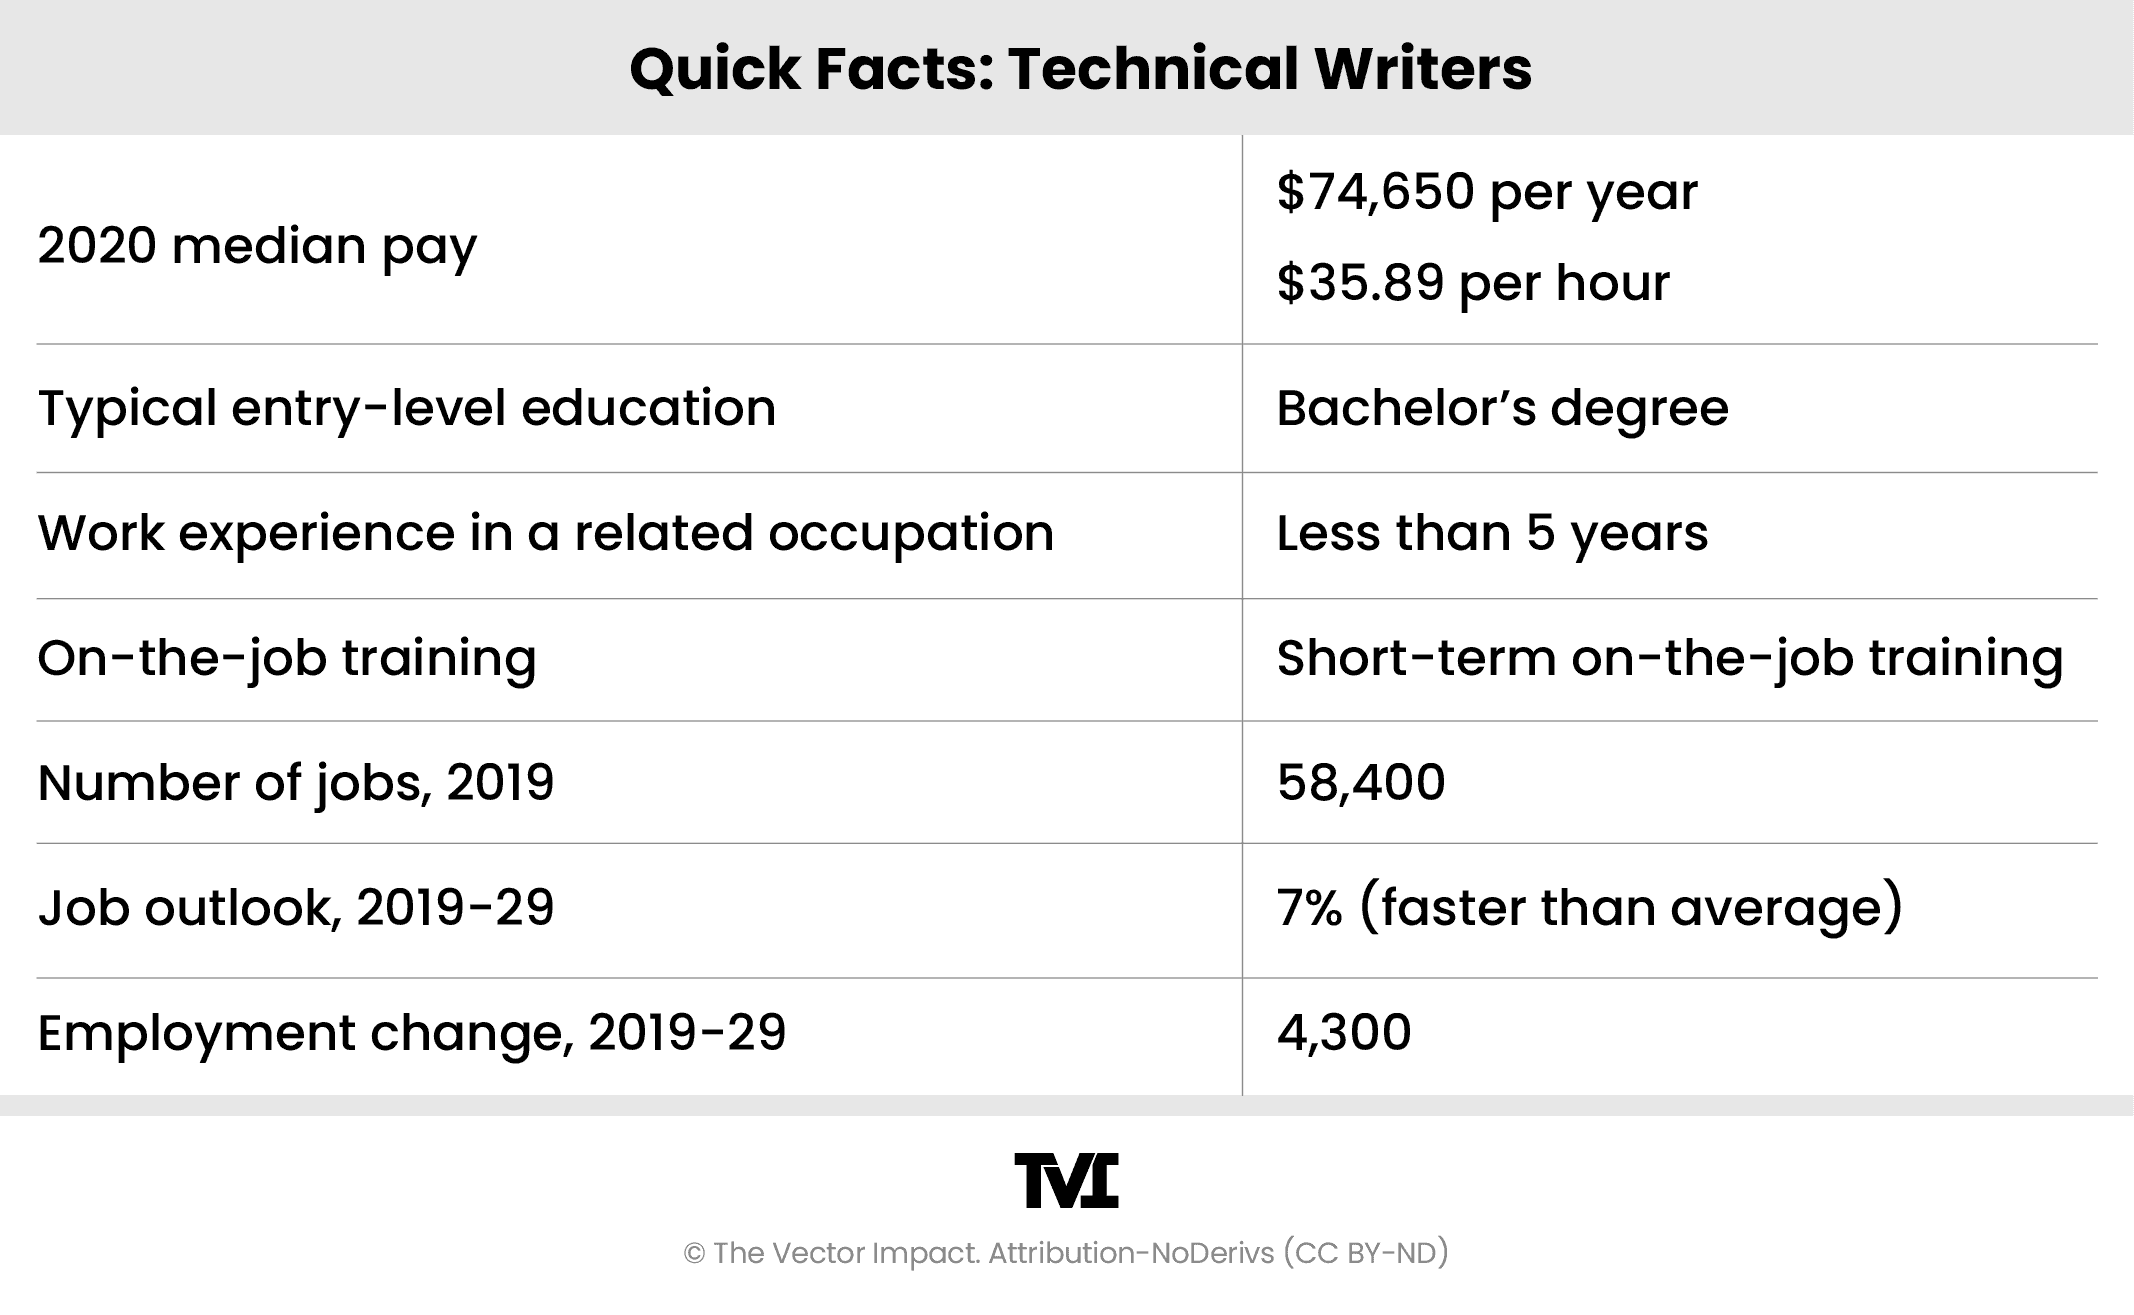 Table from the U.S. Bureau of Labor Statistics that shows the median earnings and projected growth of technical writers.